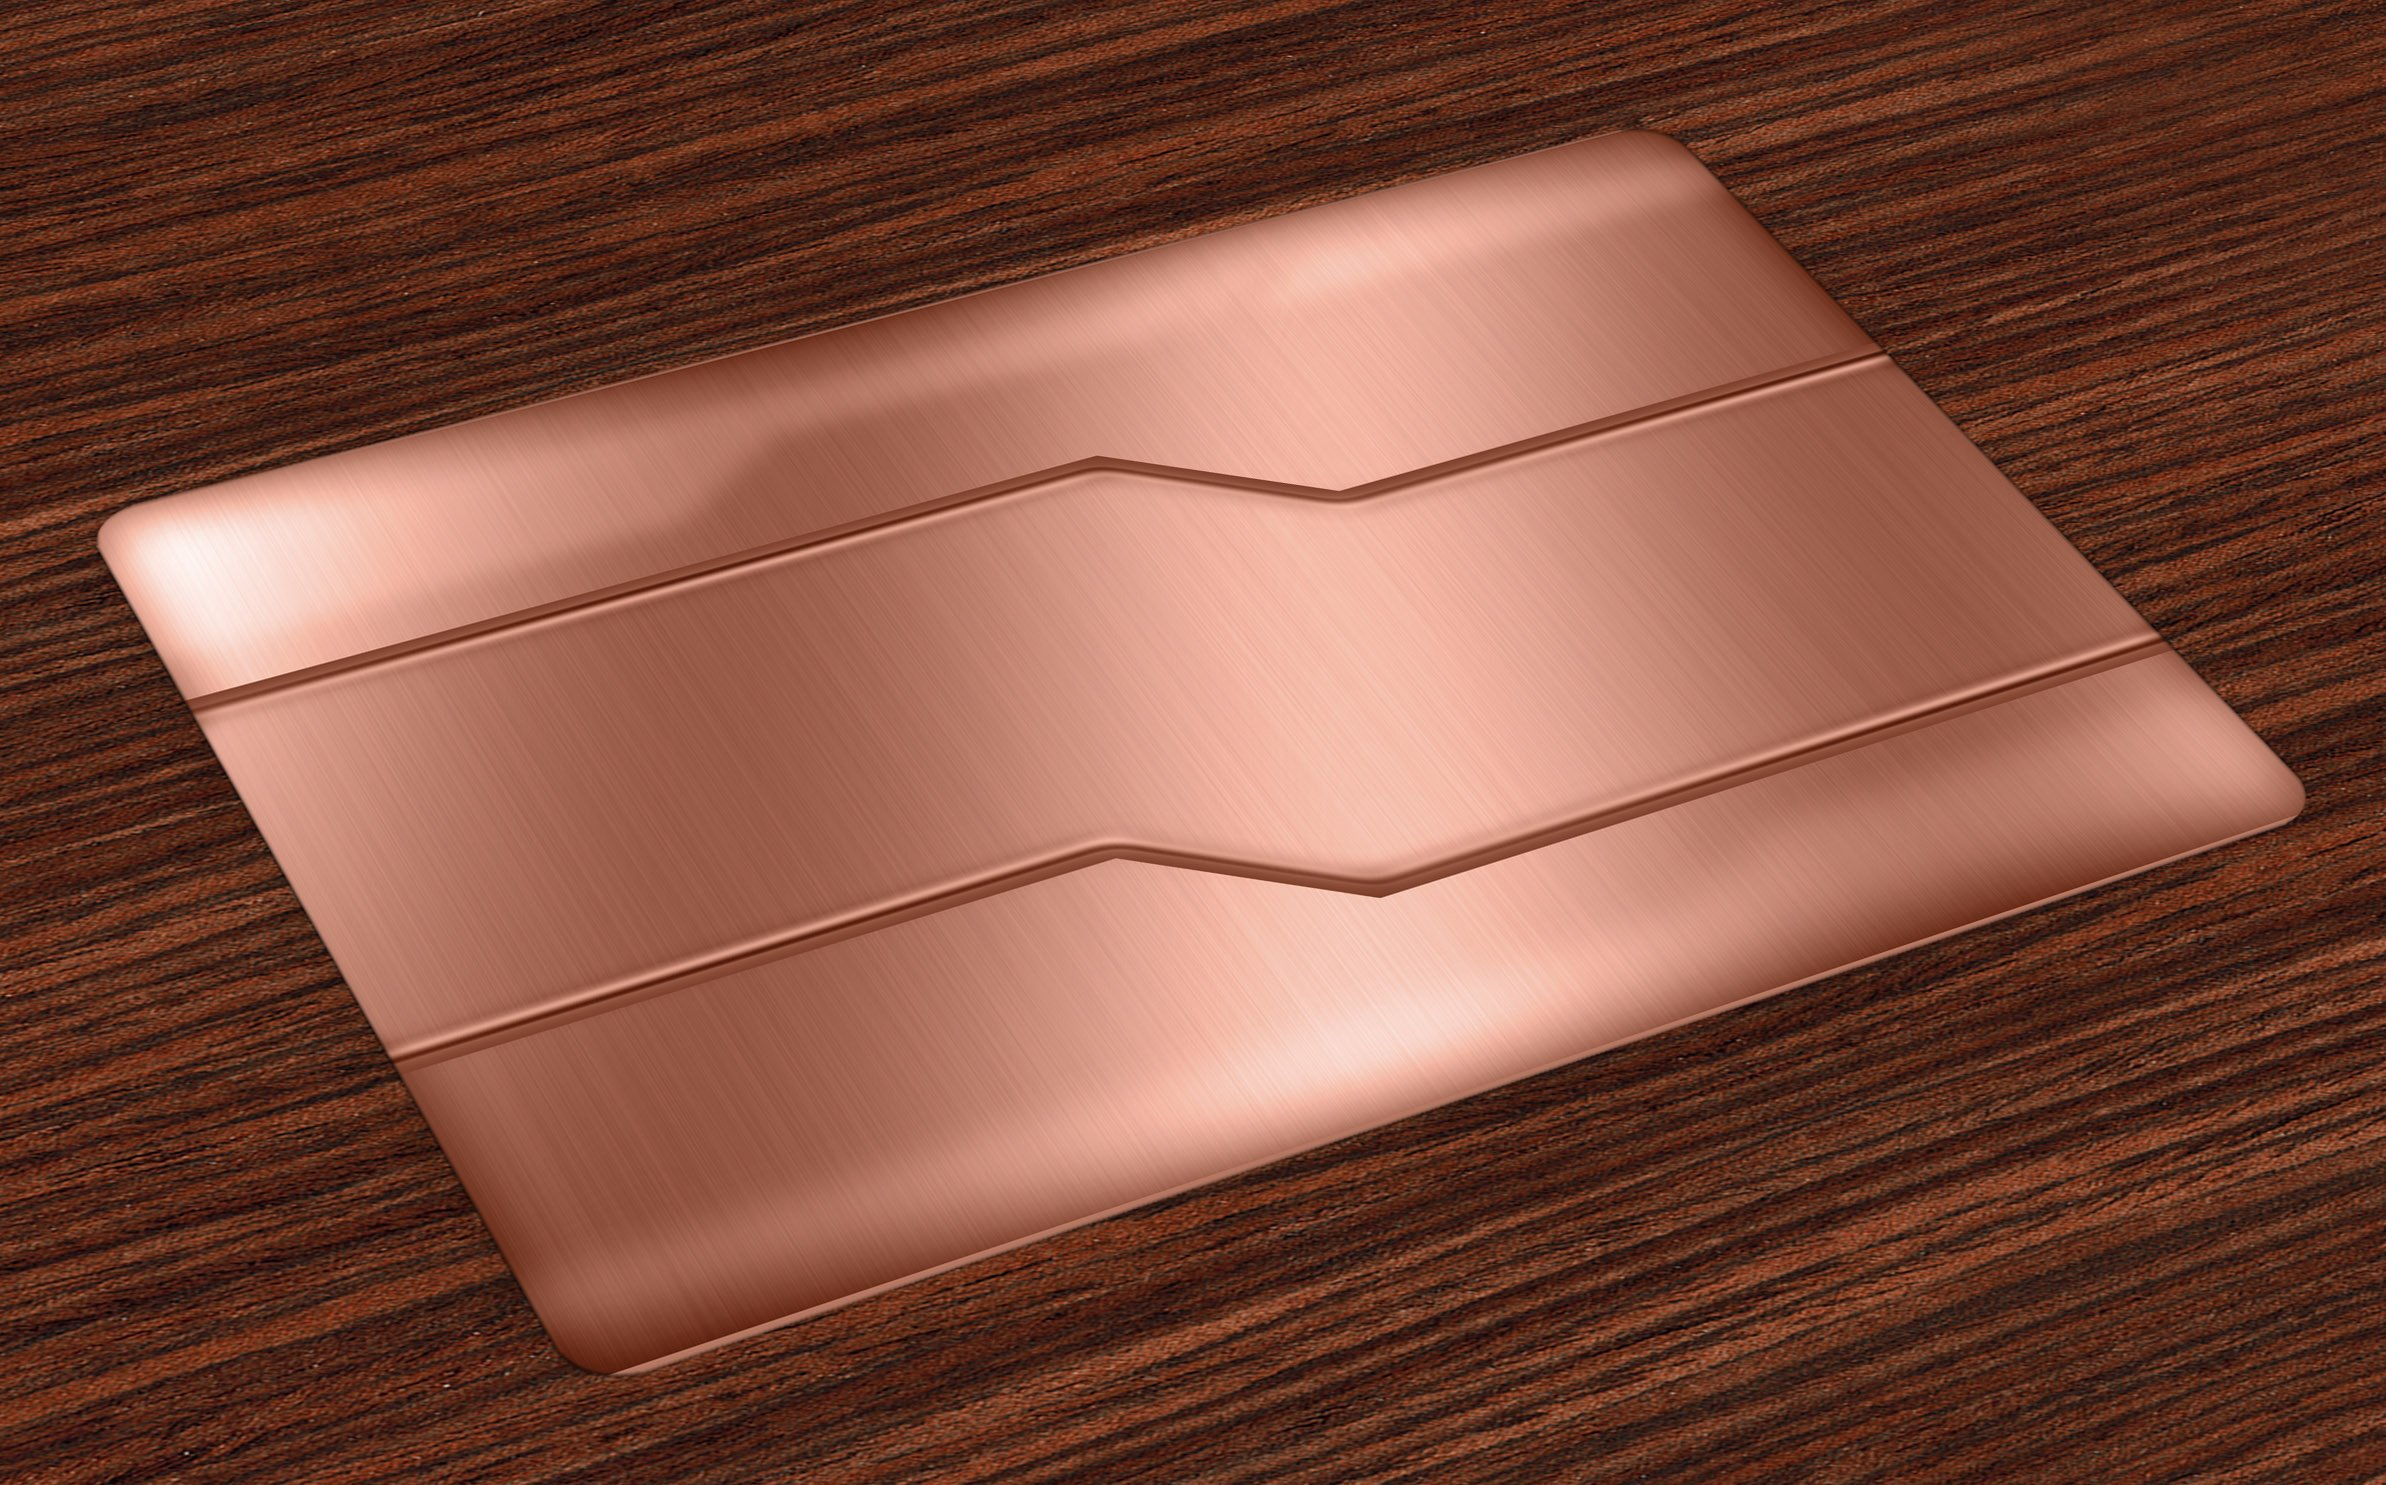 Ambesonne Industrial Place Mats Set of 4, Realistic Looking Steel Surface Print Plate Bar Image Technology Inspired Design, Washable Fabric Placemats for Dining Room Kitchen Table Decor, Rose Gold